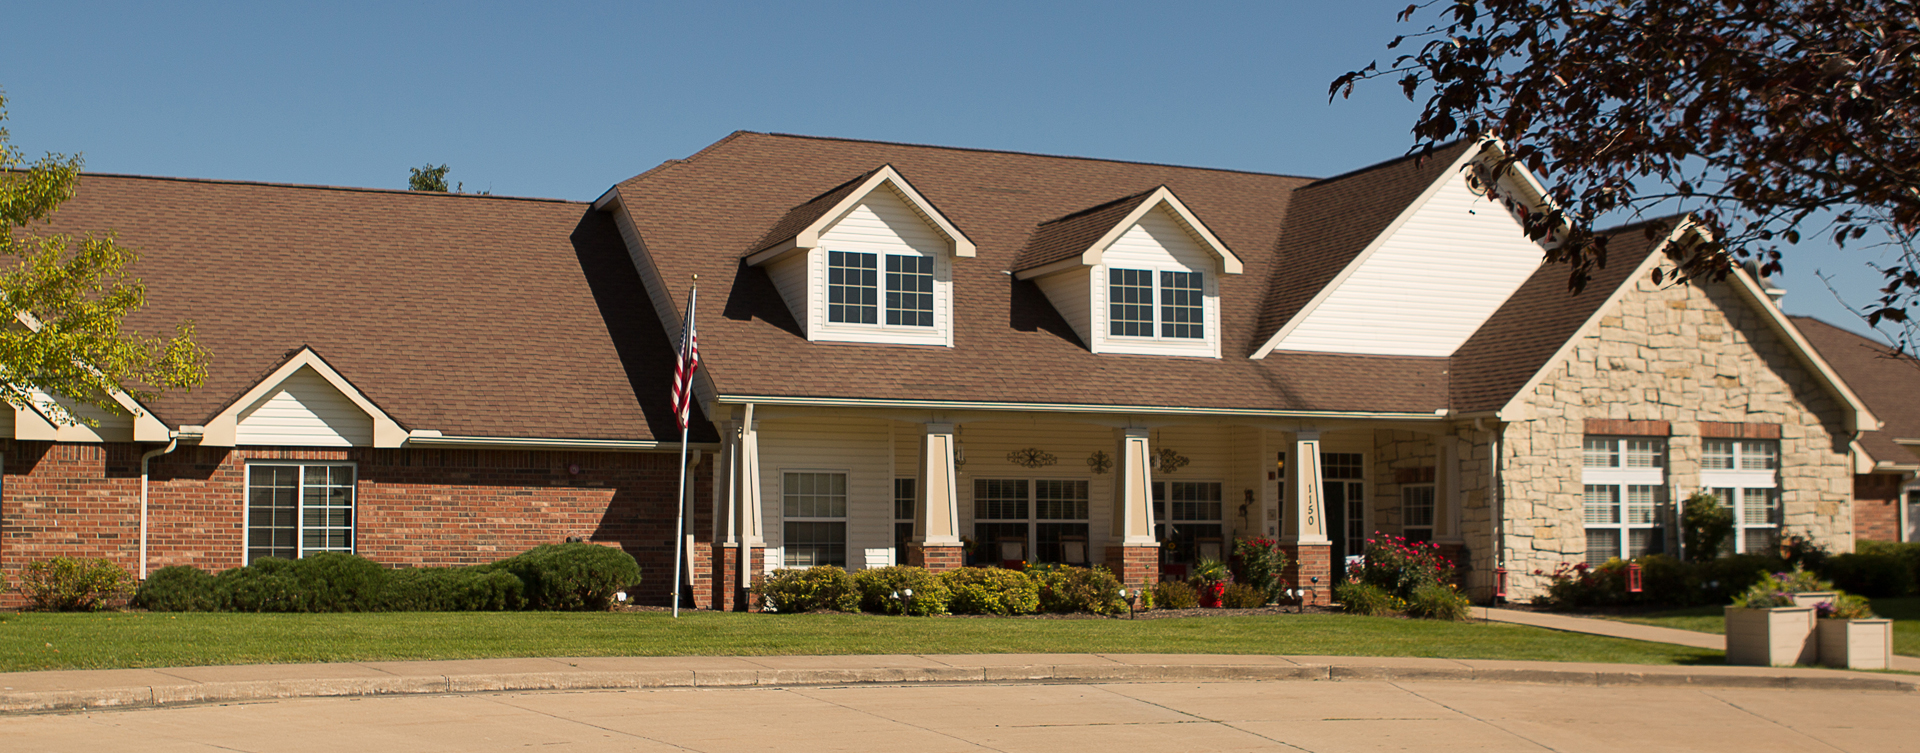 Stop by and visit us at  Bickford of Clinton